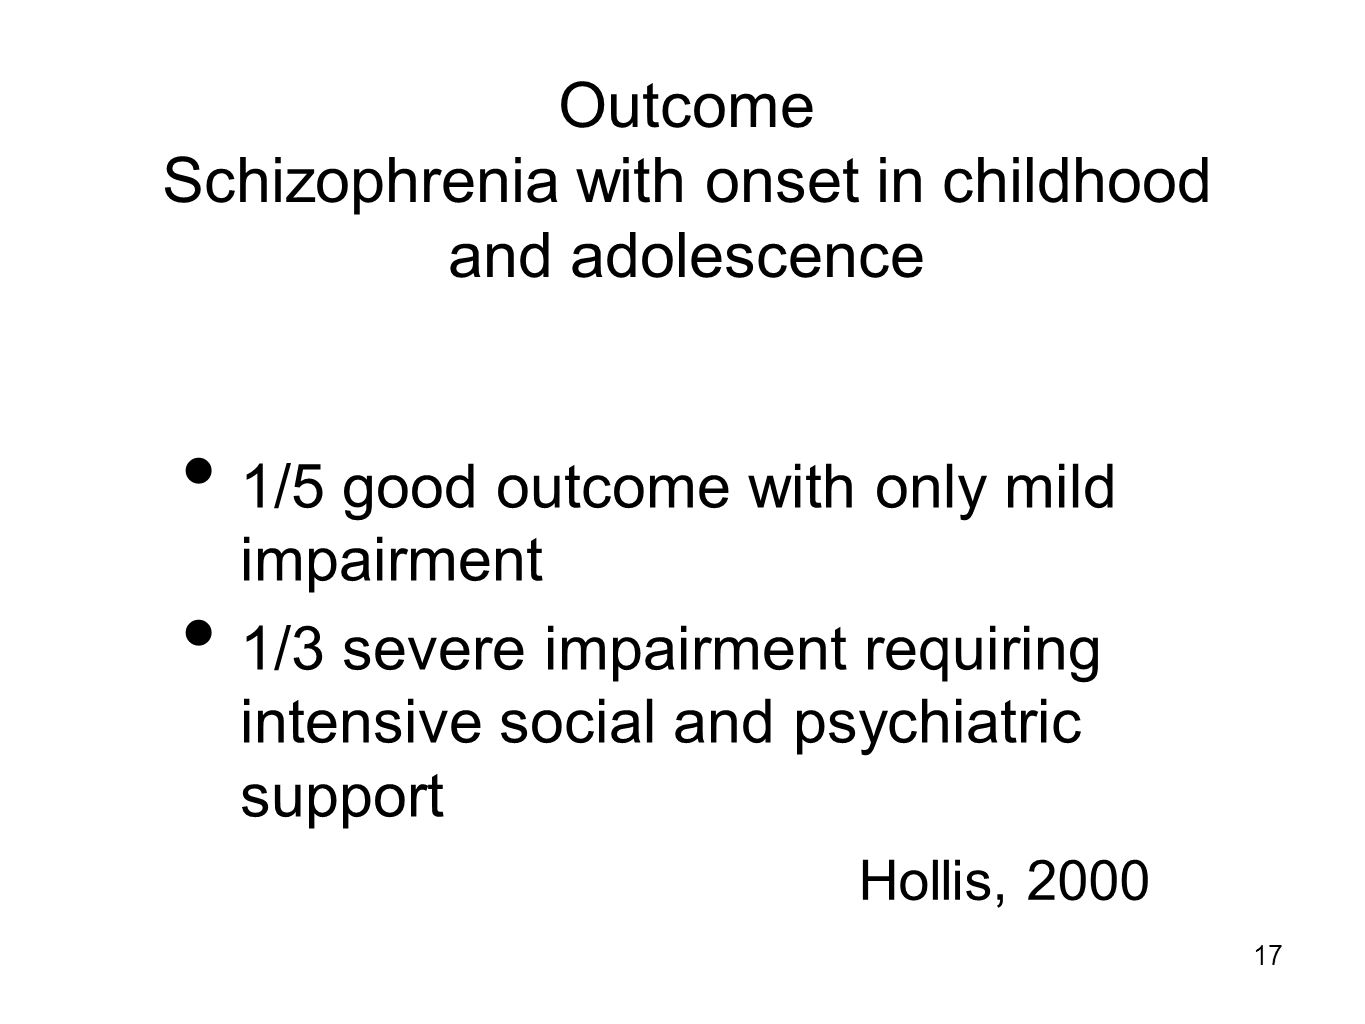 psychosis in children As with psychotic illness in adults, the treatment in children is the same - the positive symptoms of hallucination and delusion (the psychosis) are treated with drugs called antipsychotics.